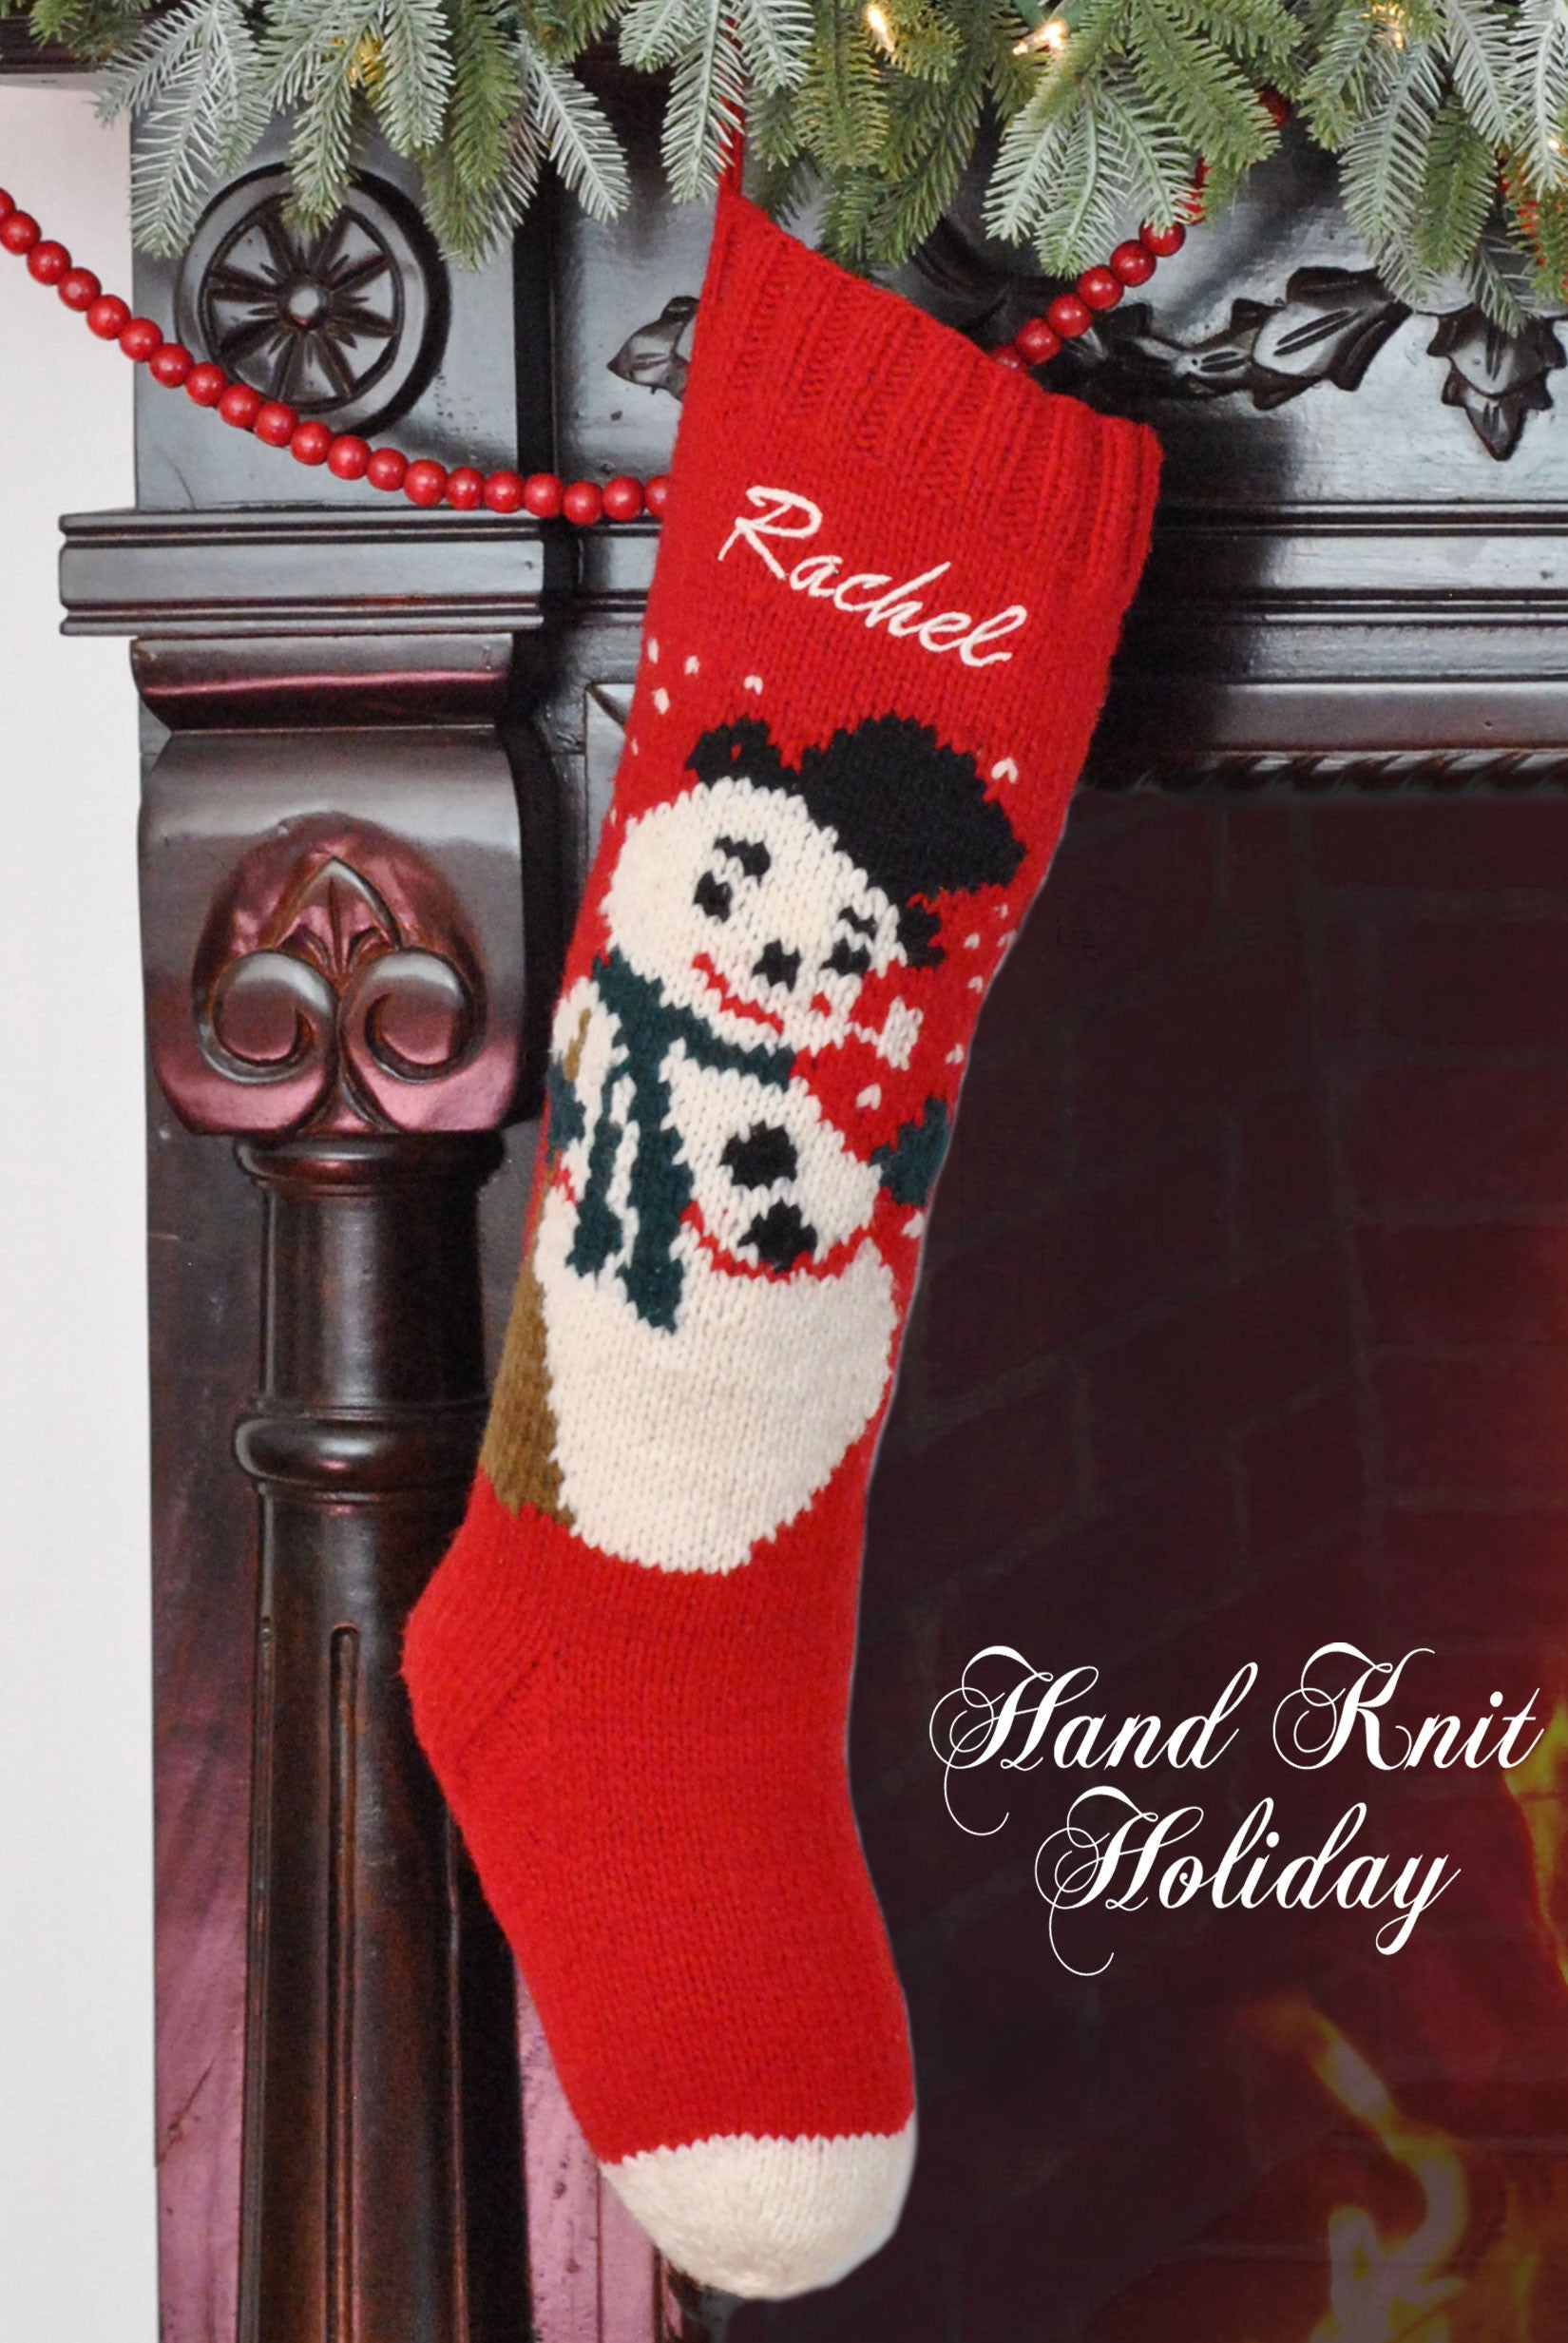 News from the Nice List – Hand Knit Holiday